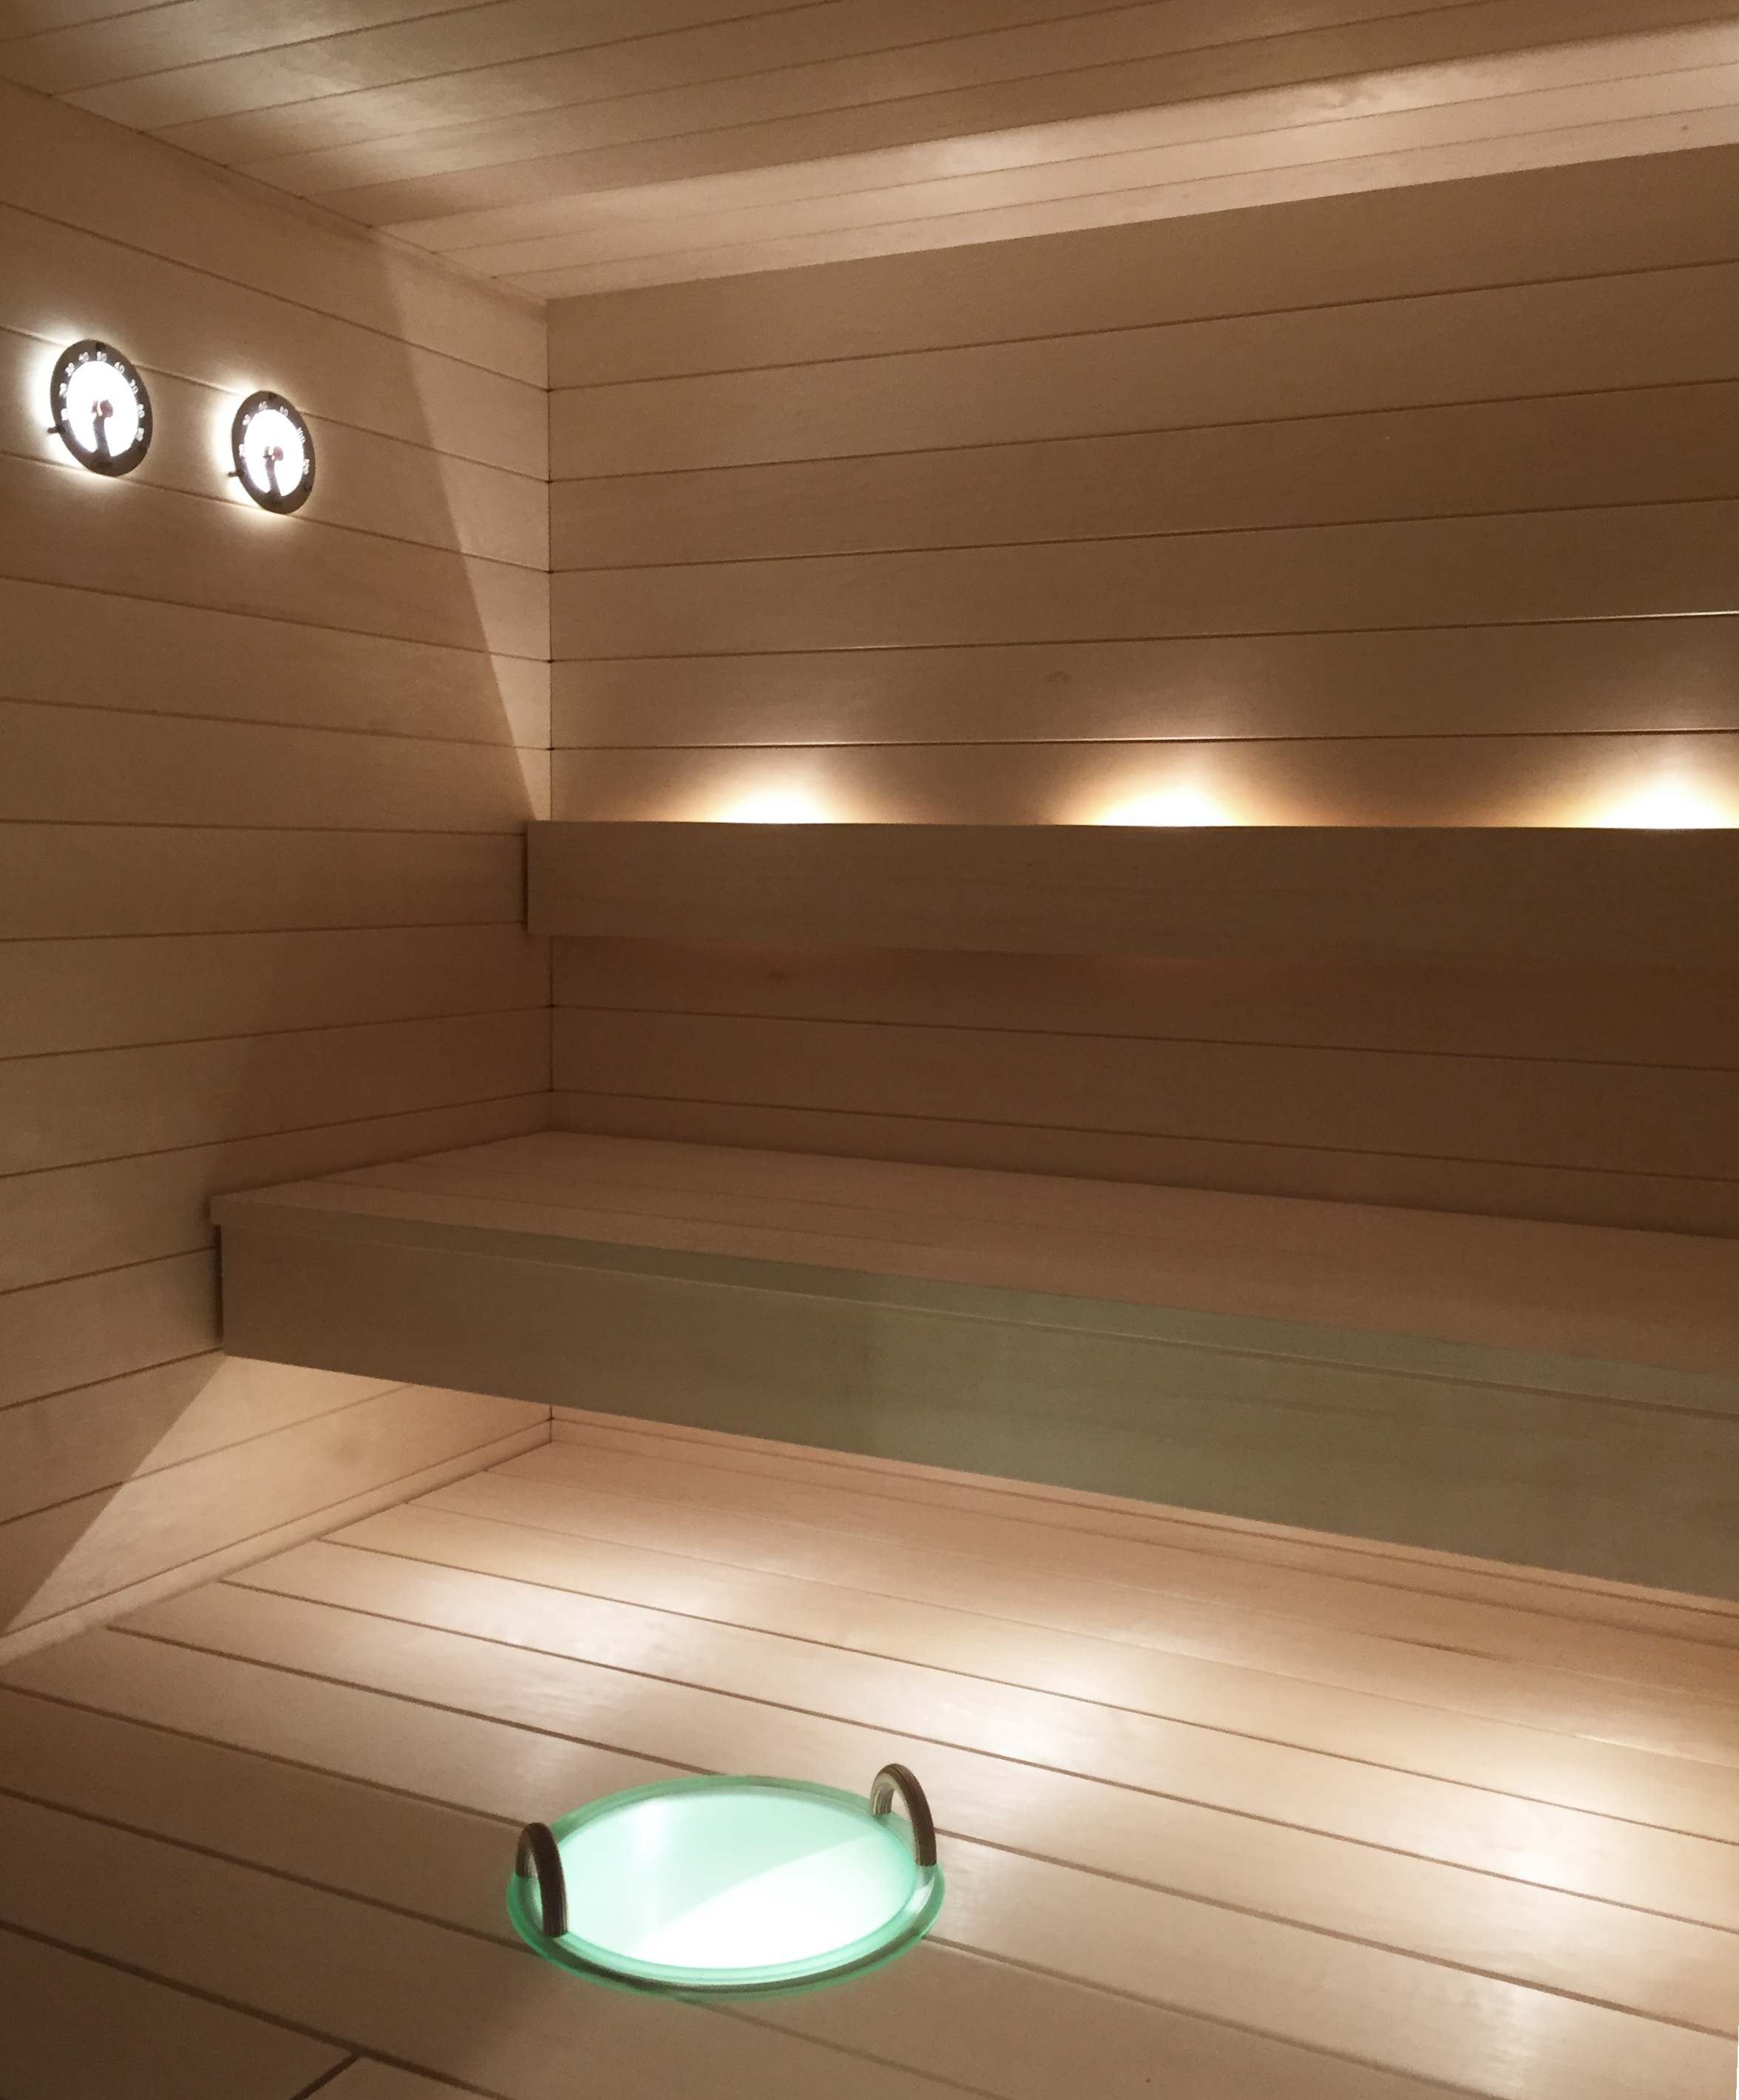 Installer un sauna simple fabriquer et installer son propre sauna with installer un sauna - Fabriquer un sauna ...